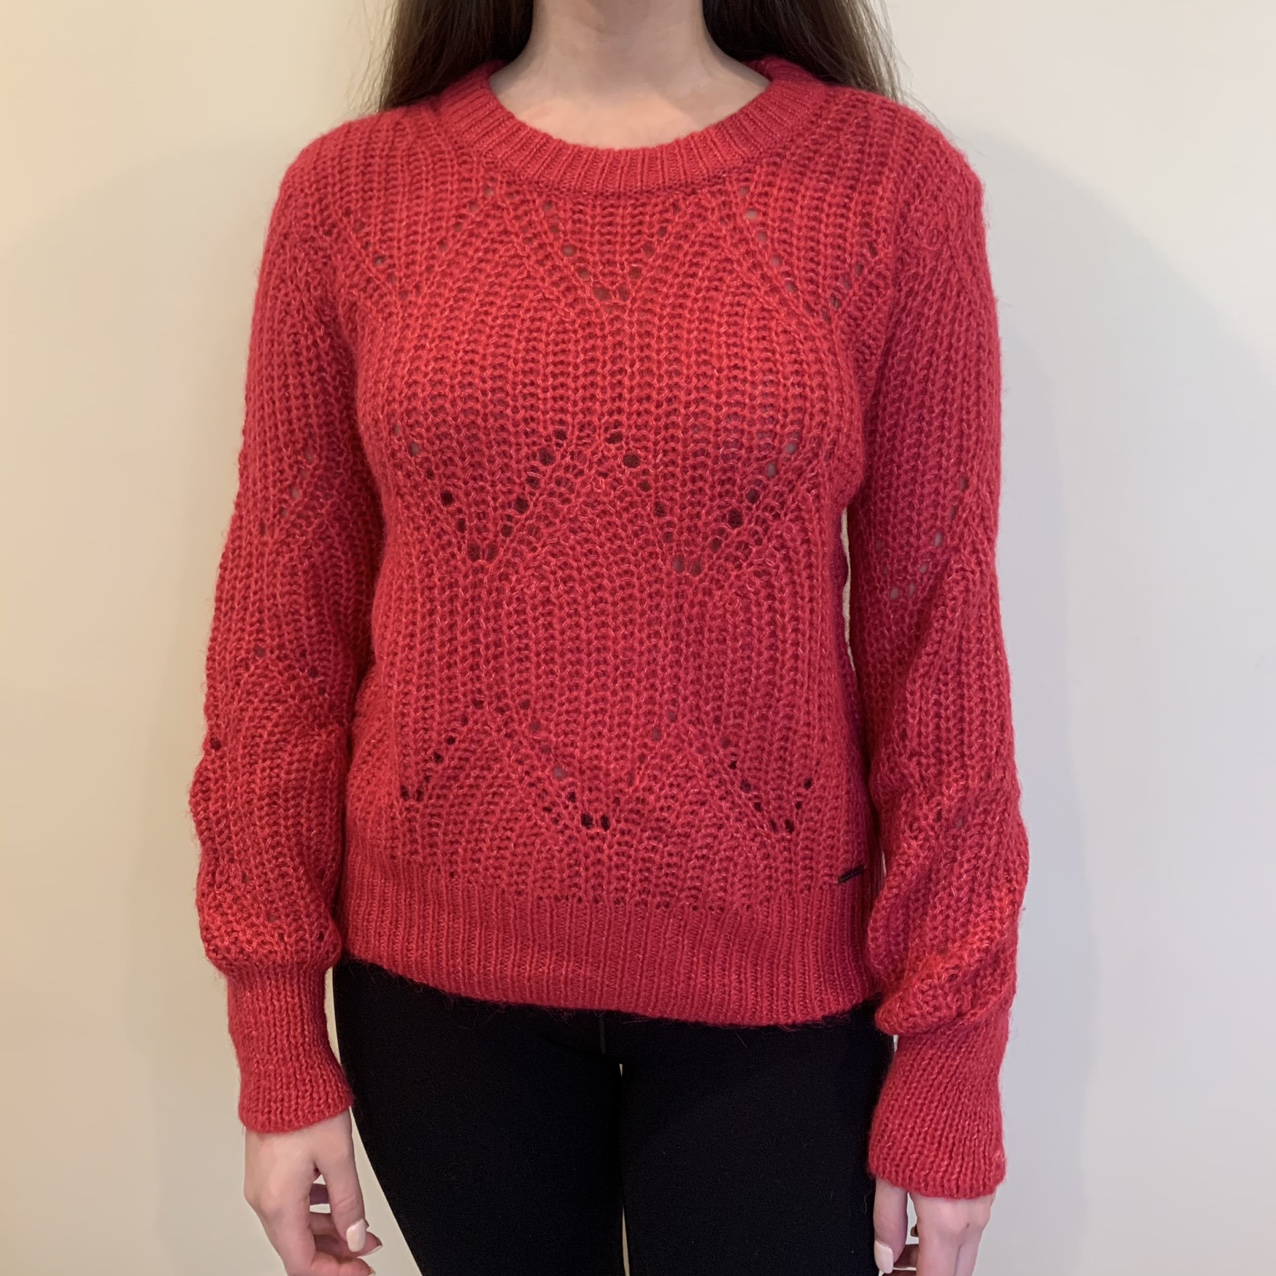 Product Image 1 - Abercrombie and Fitch red sweater.